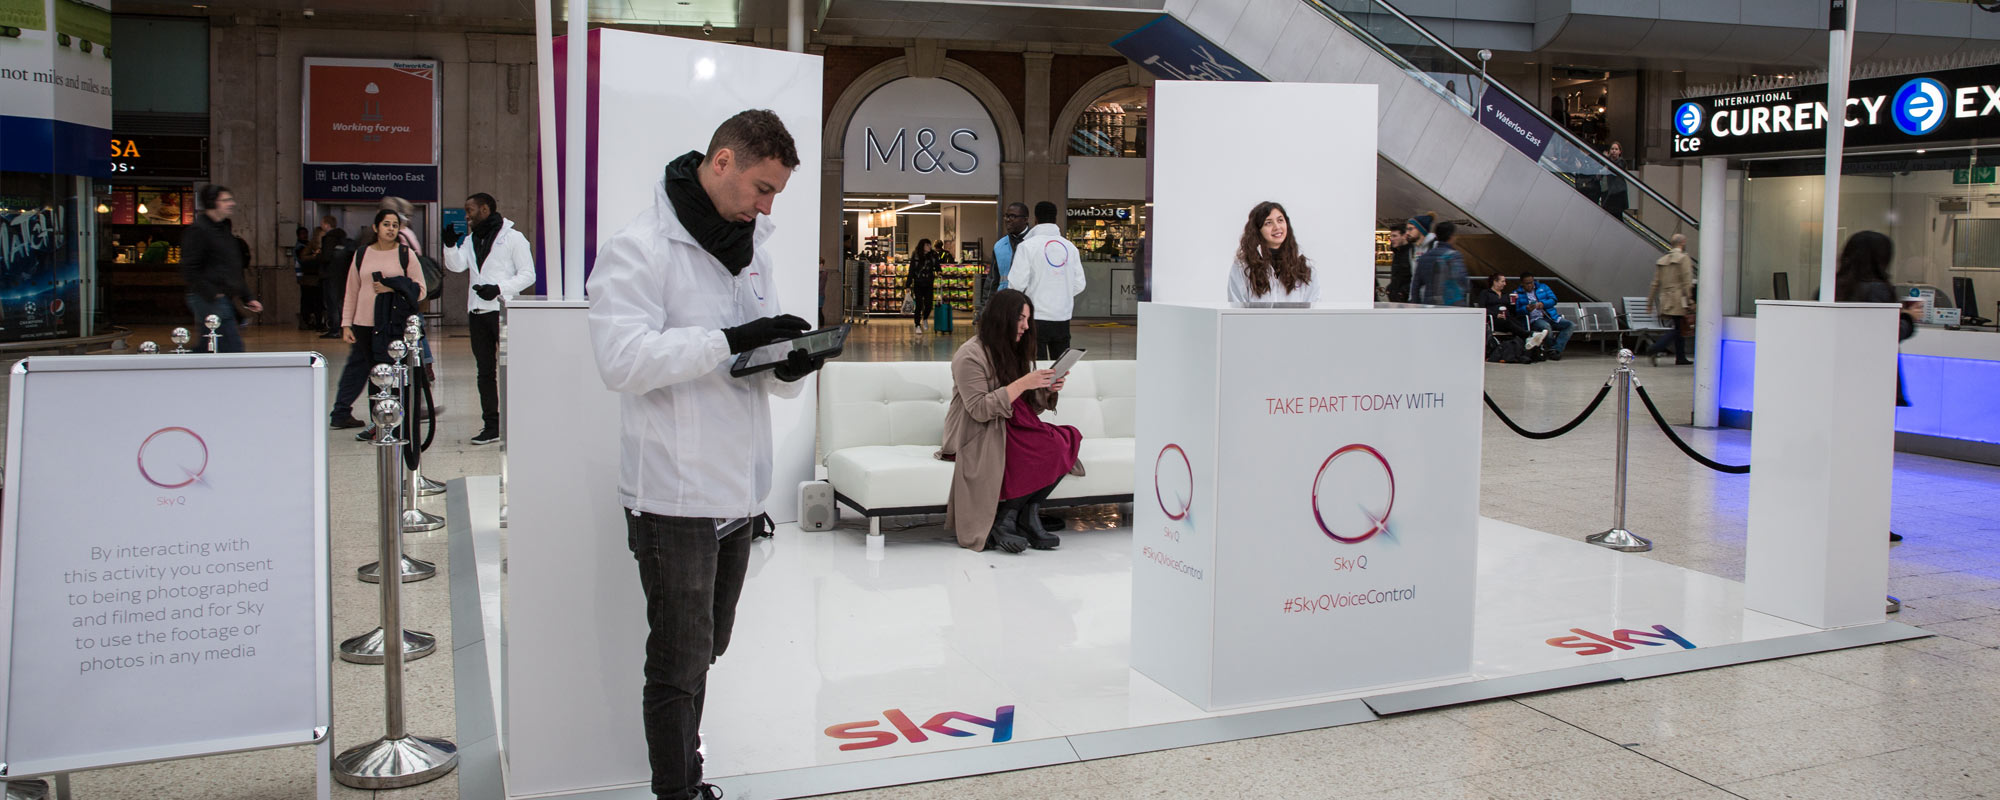 London Waterloo Welcomes #SkyQVoiceControl with Augmented Reality Stunt